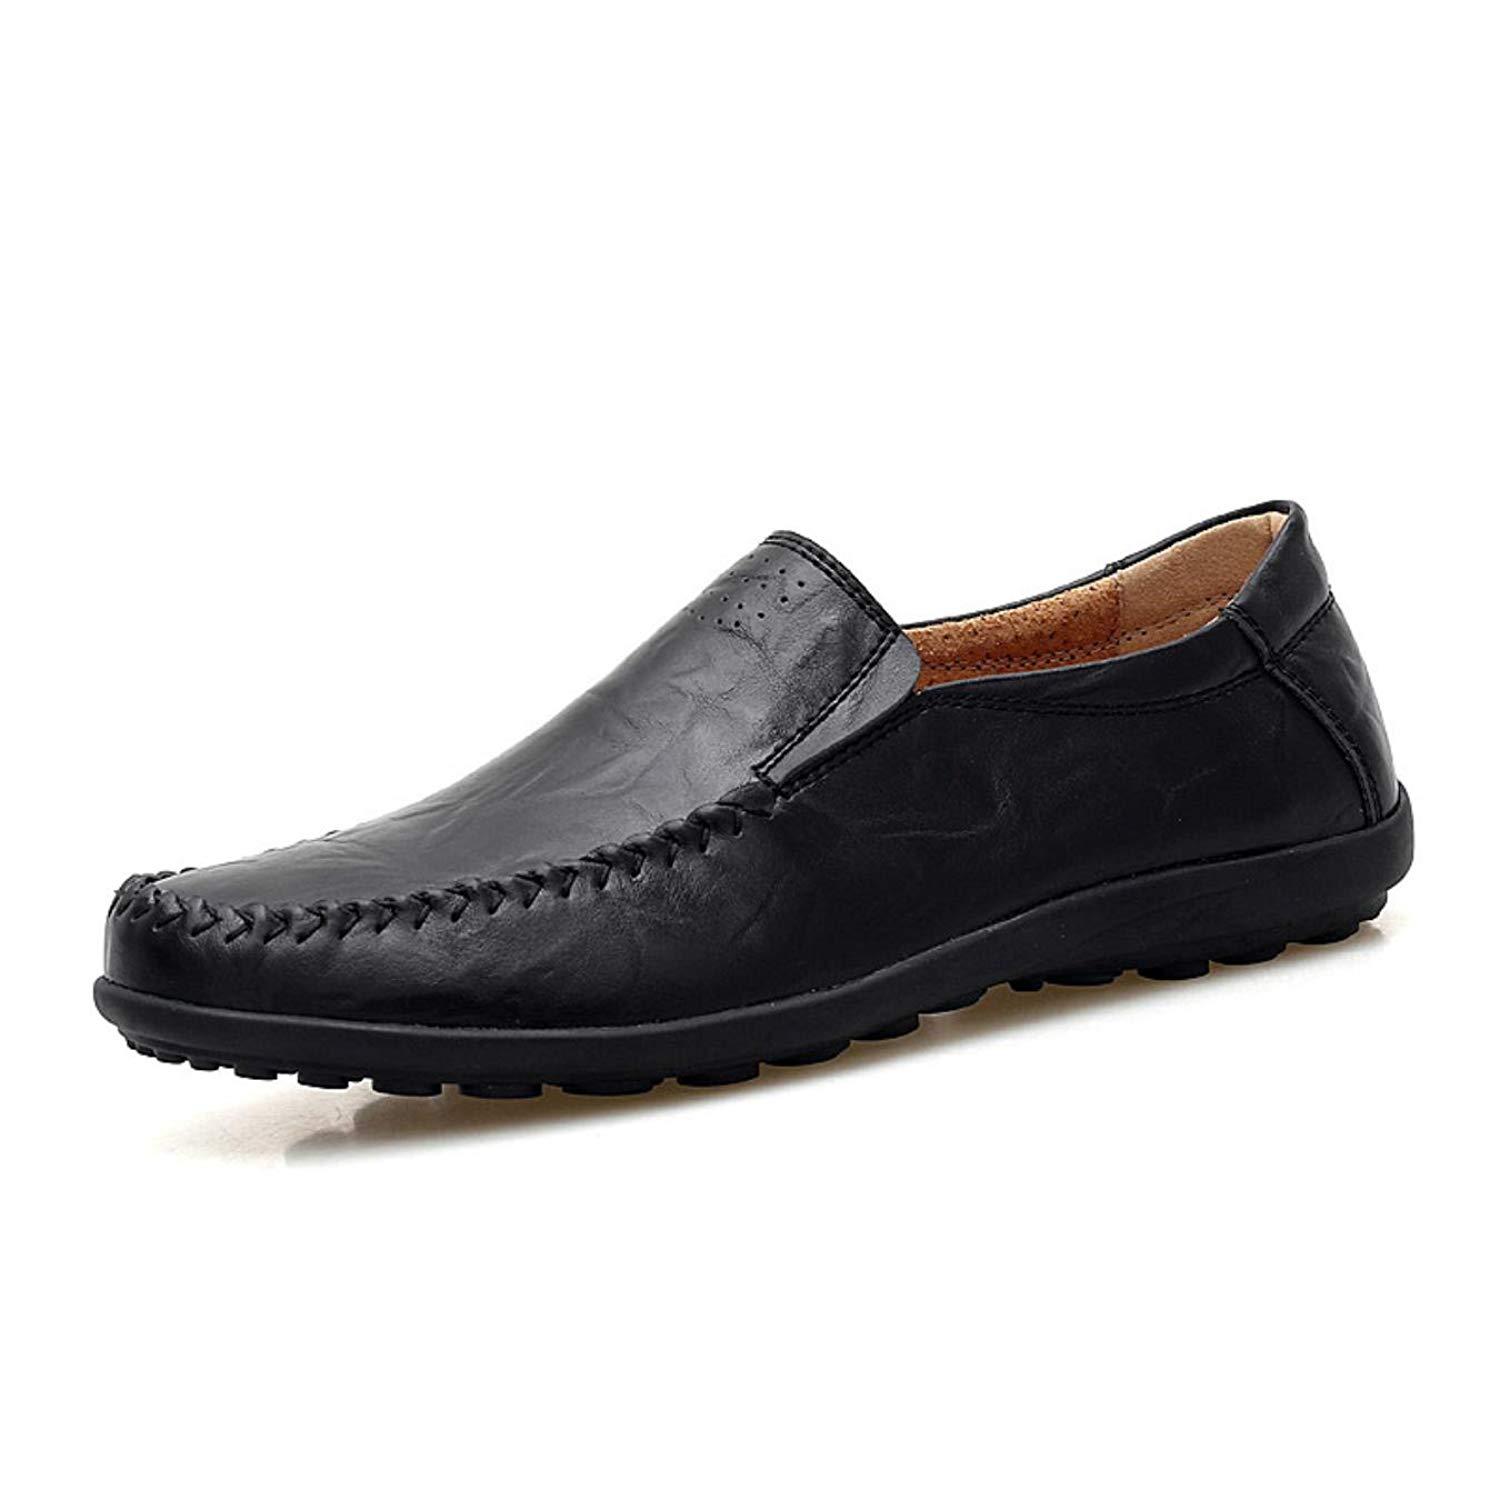 Italian Mens Shoes Casual Brands Genuine Leather Men Loafers Luxury Moccasins Comfy Breathable Slip On Boat Shoes Men